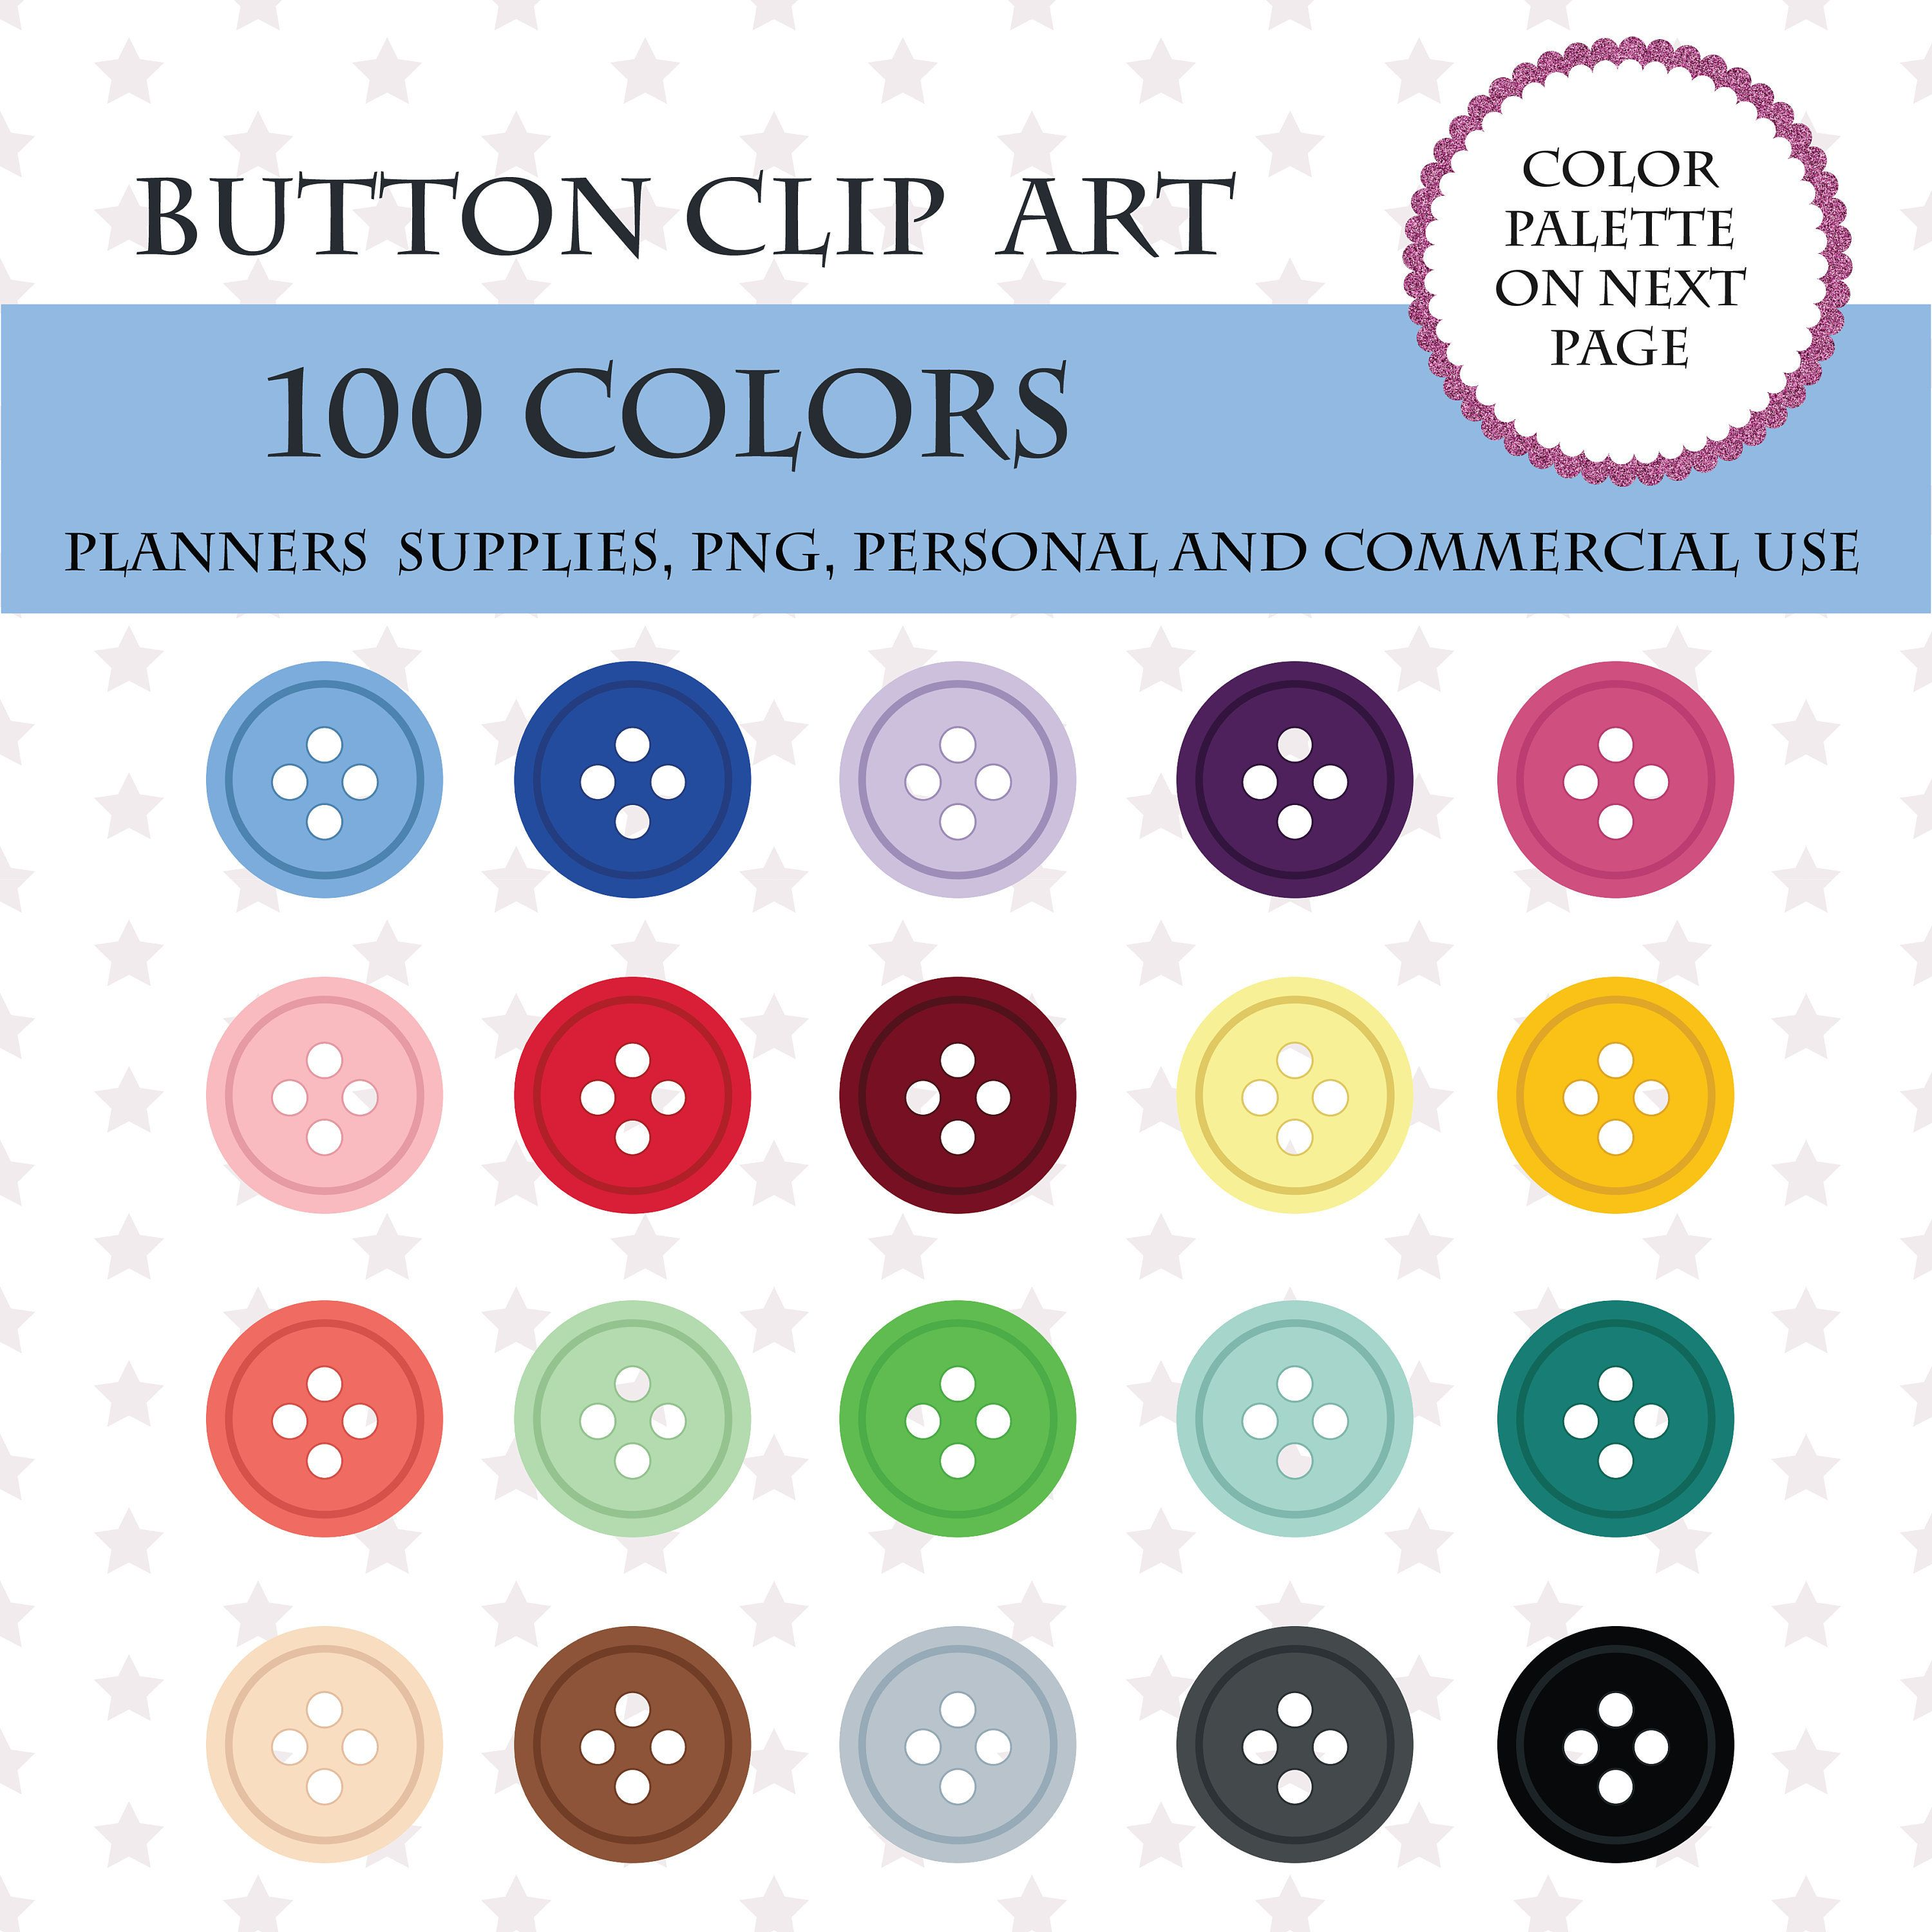 hight resolution of printable 100 buttons clipart button art digital sewing elements clip art cute rainbow buttons commercal use pl61